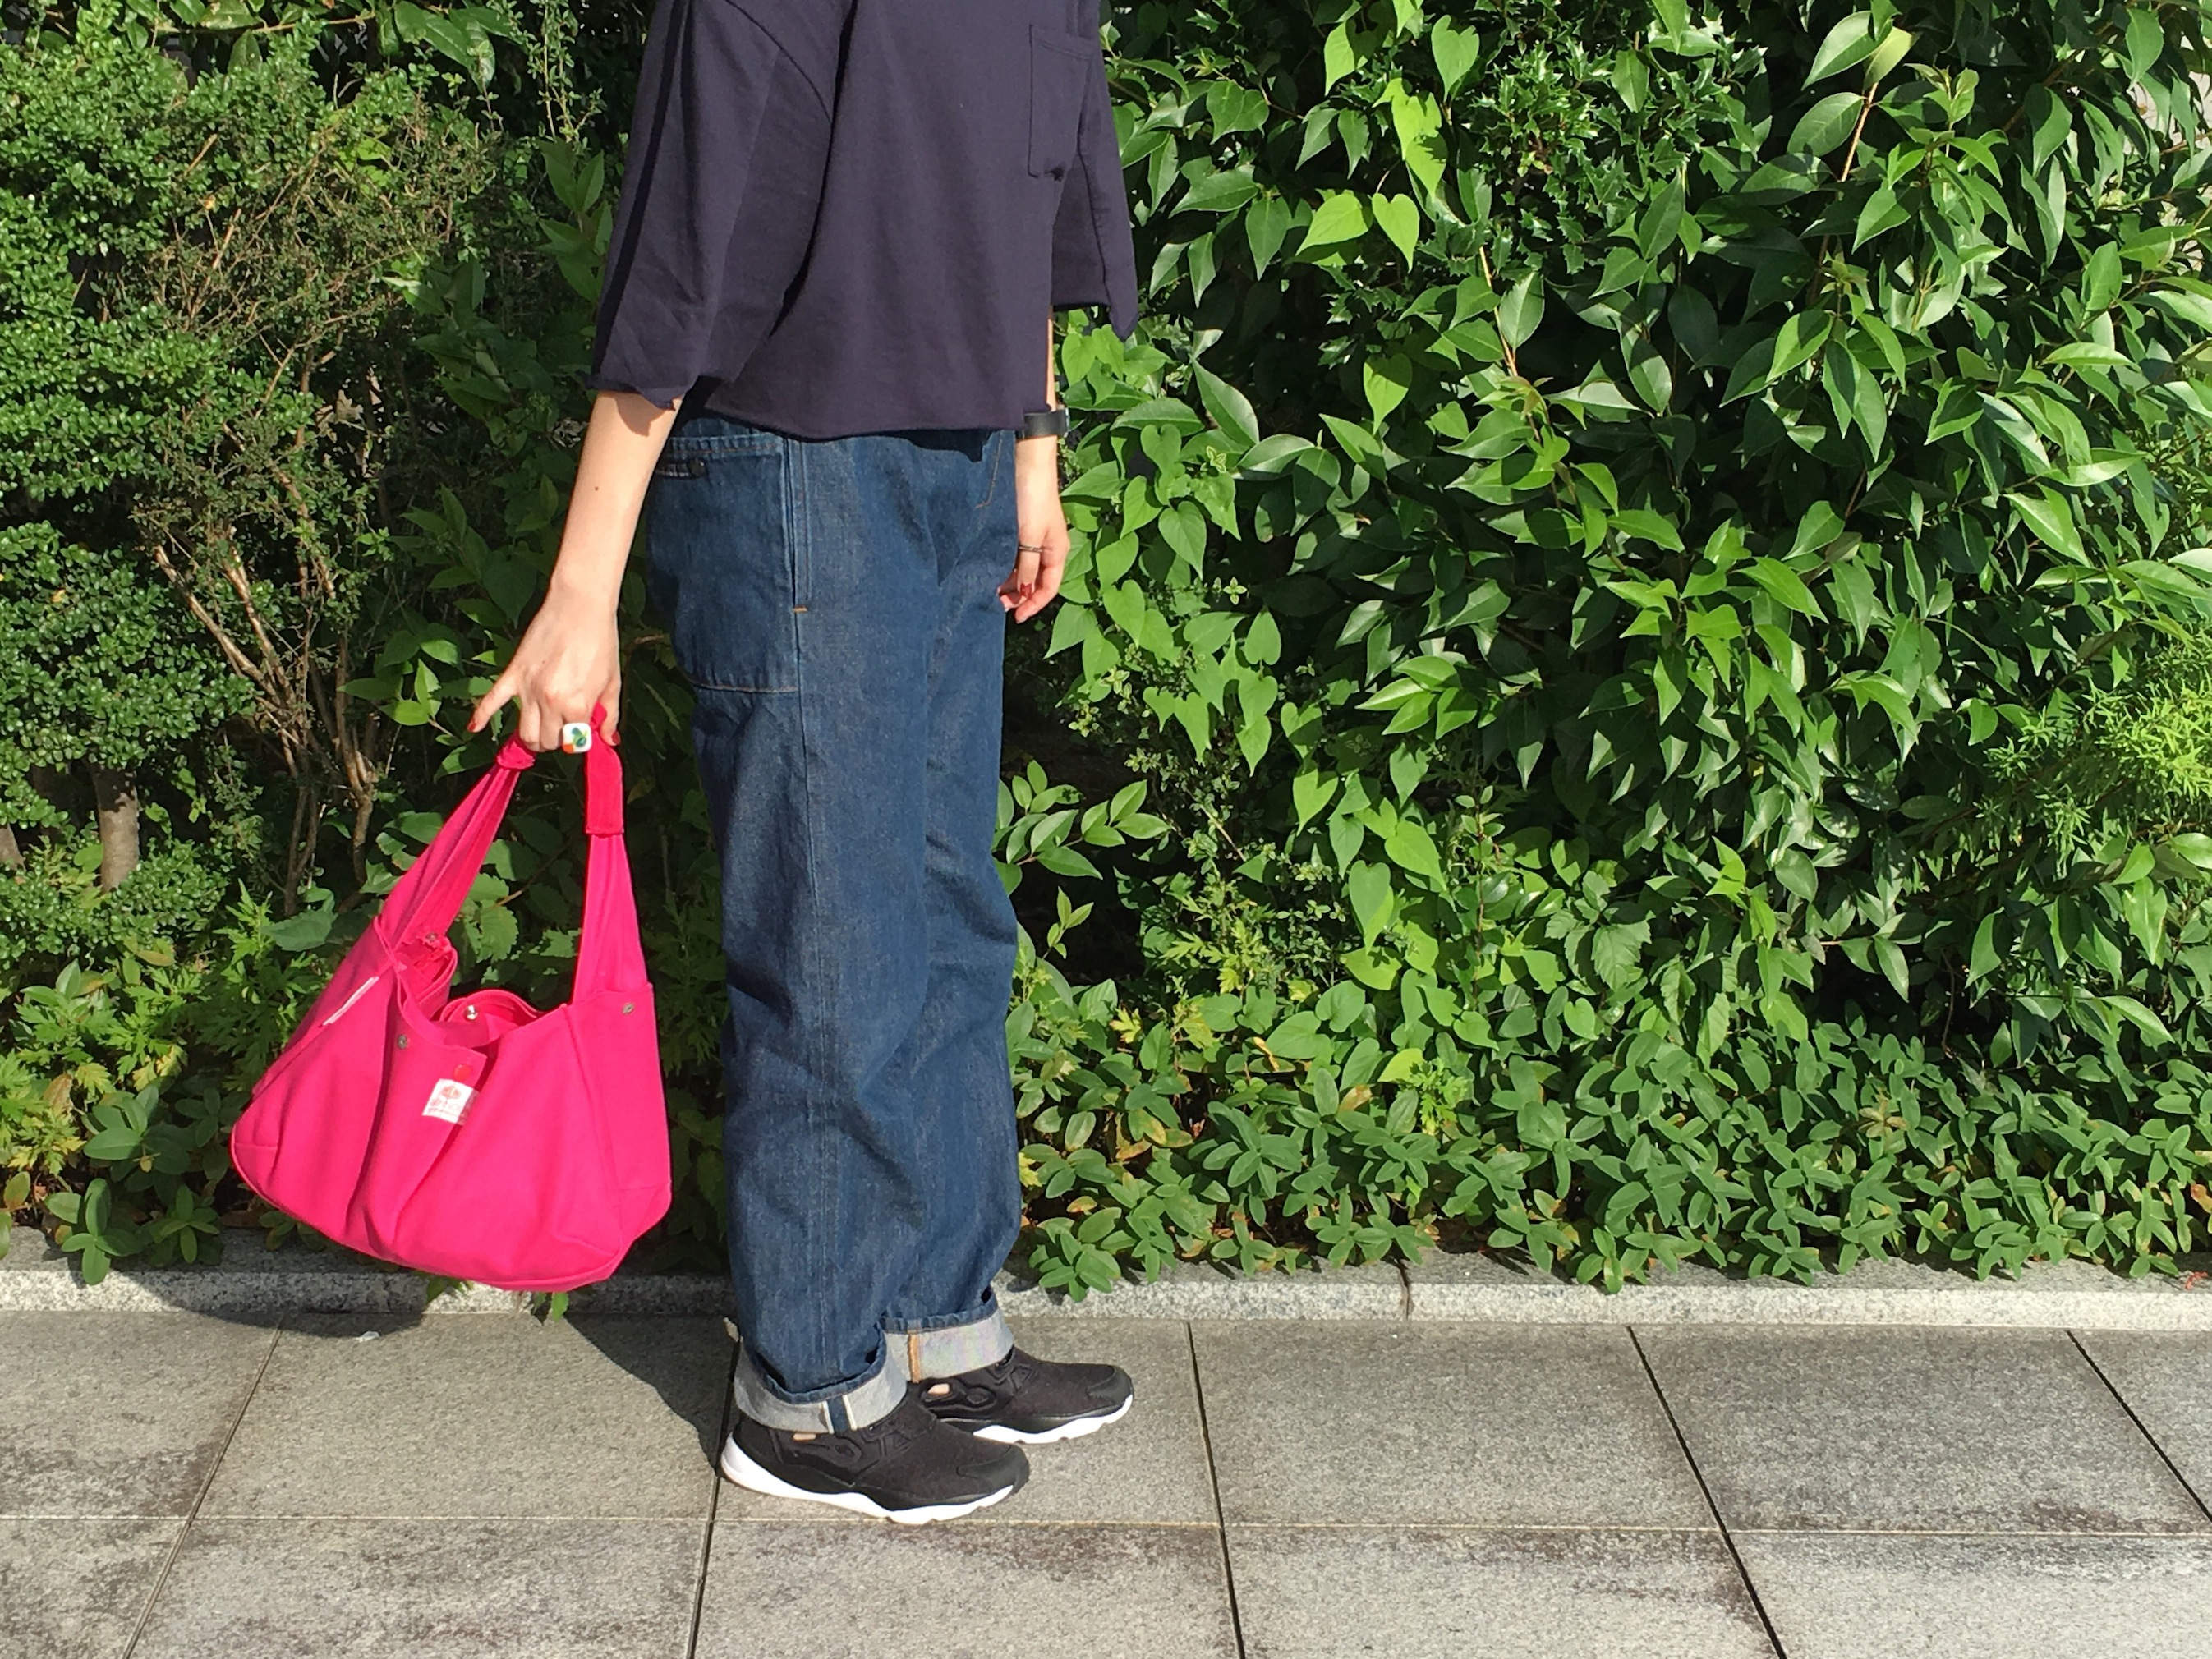 【 JOINER 16 'M' PINK 】